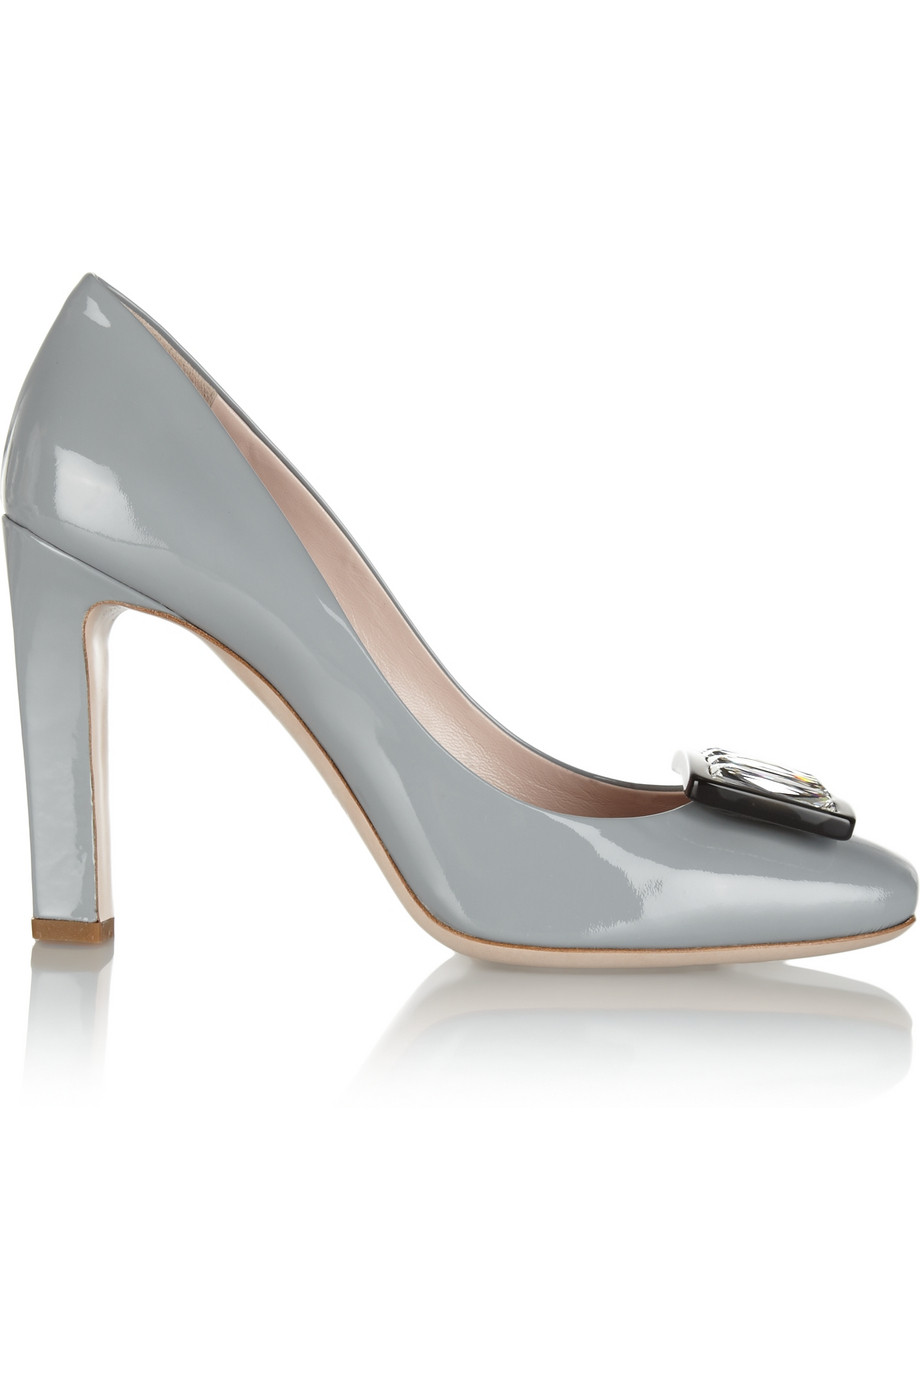 8317a15f18d Lyst - Miu Miu Crystalembellished Patentleather Pumps in Gray